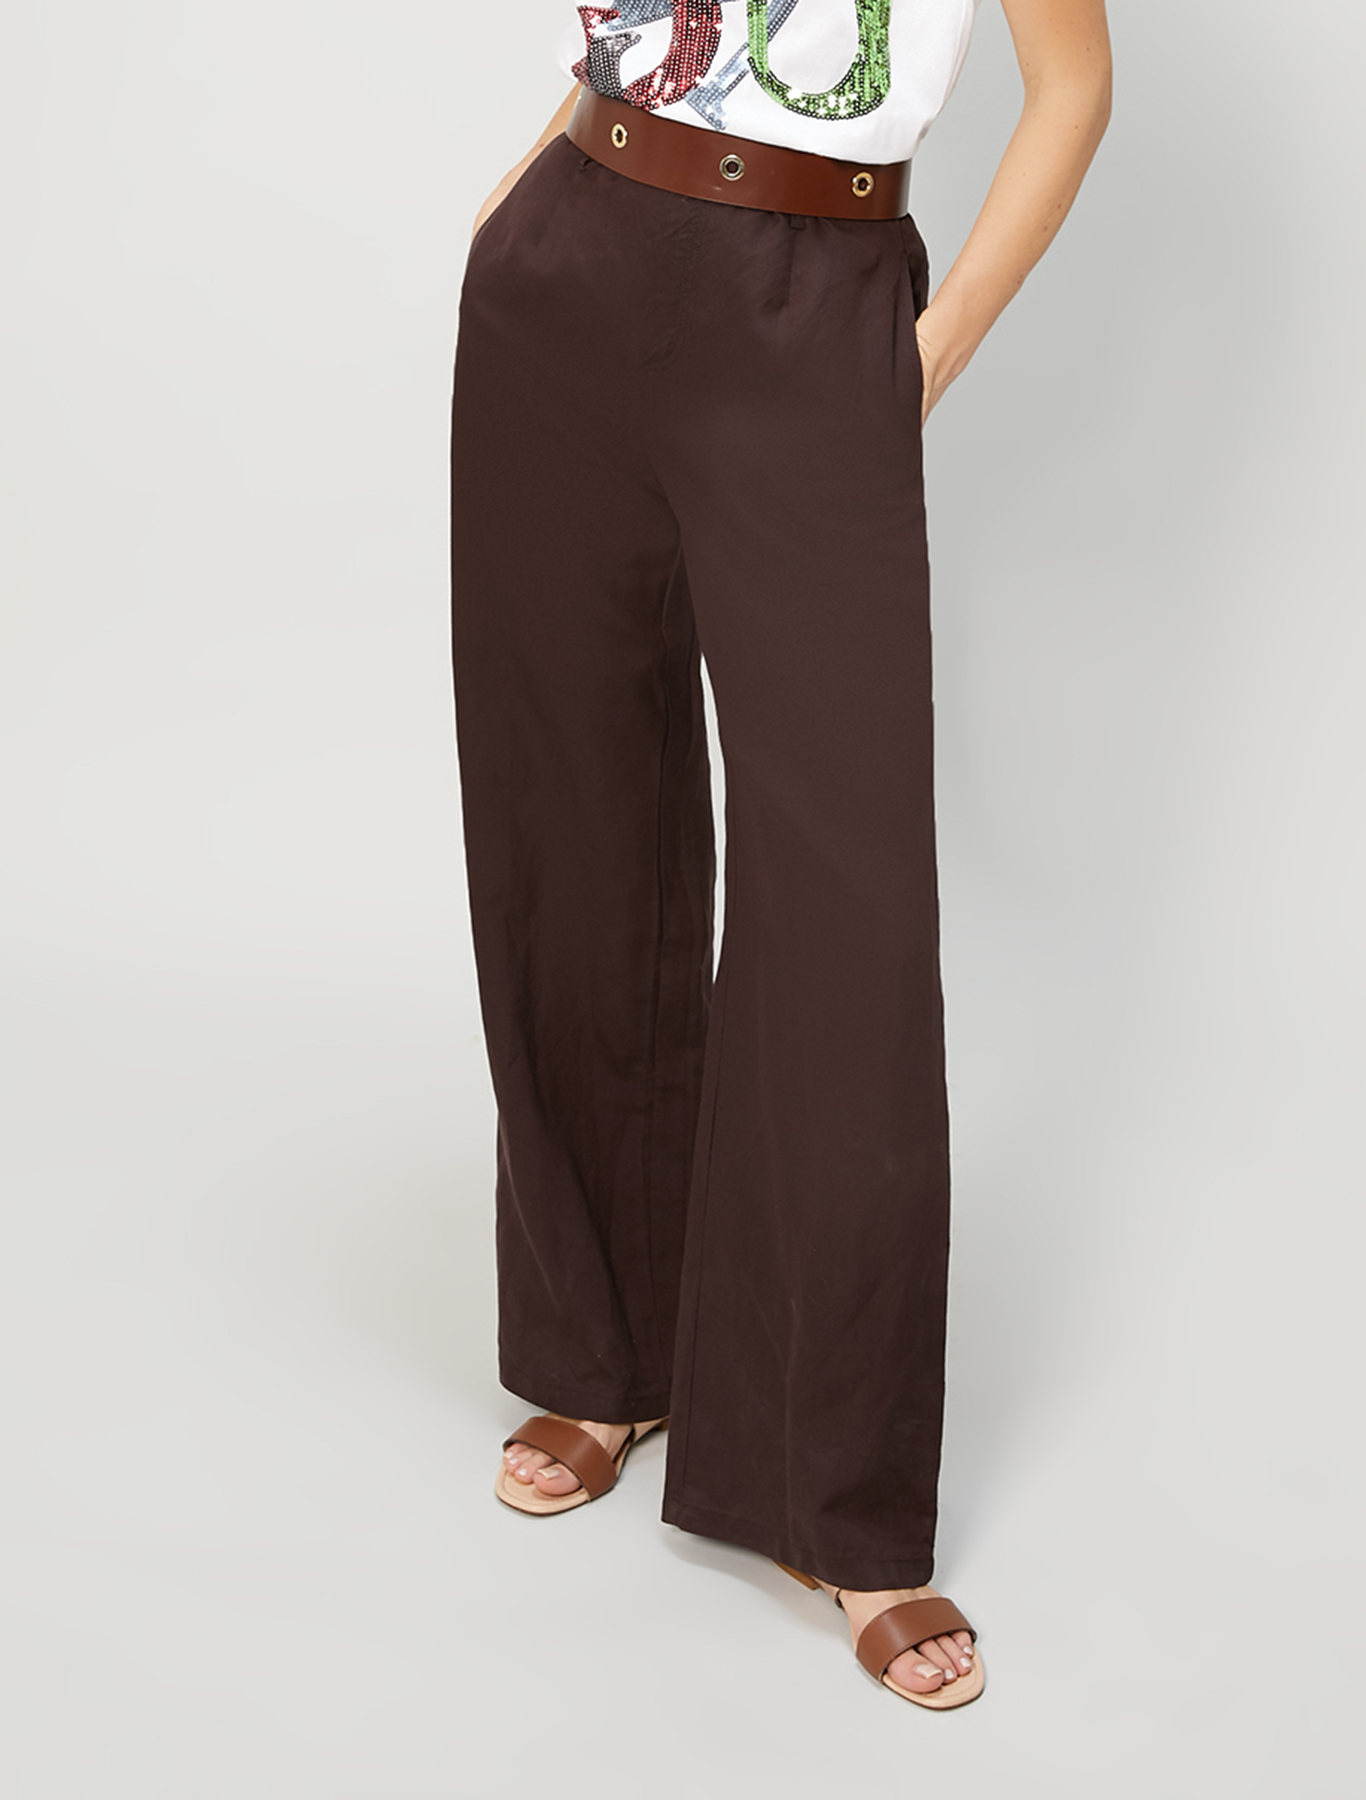 Linen blend trousers - brown - pennyblack